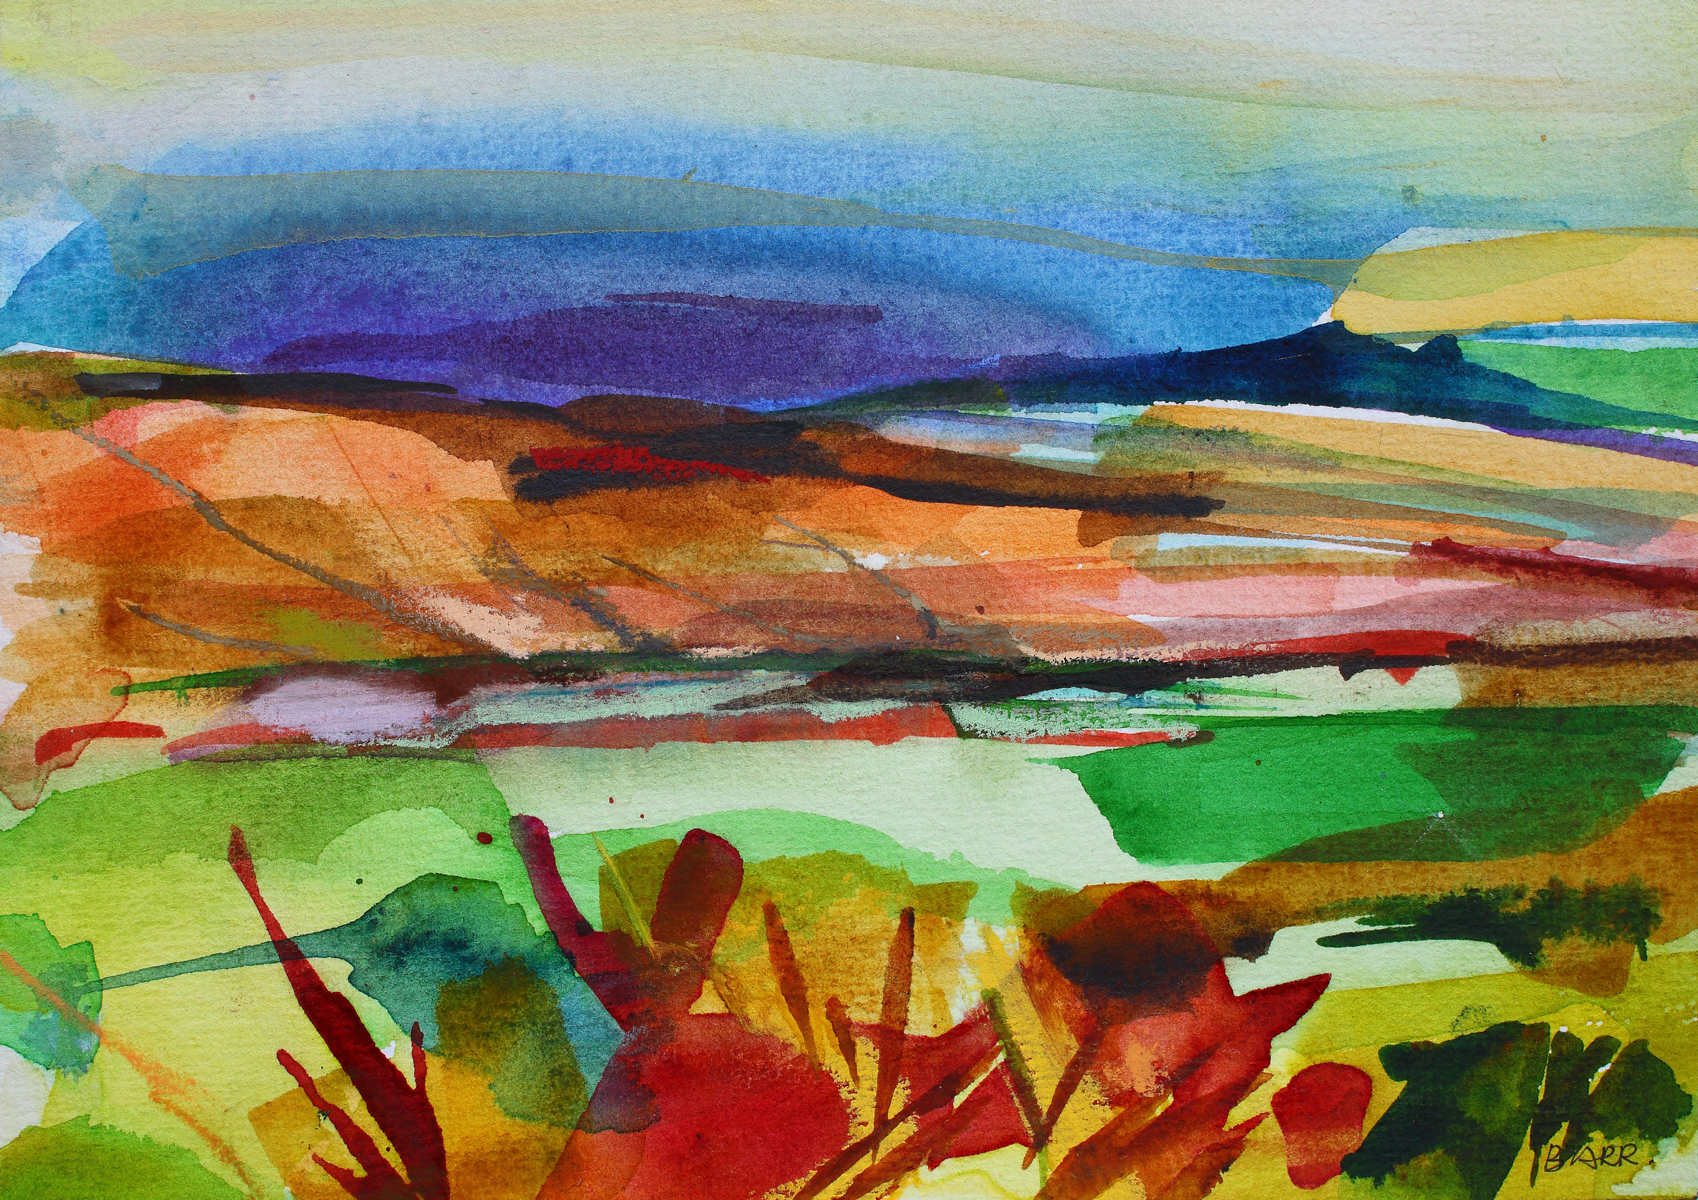 Watercolour titled 'From the Crow Road' by Shona Barr